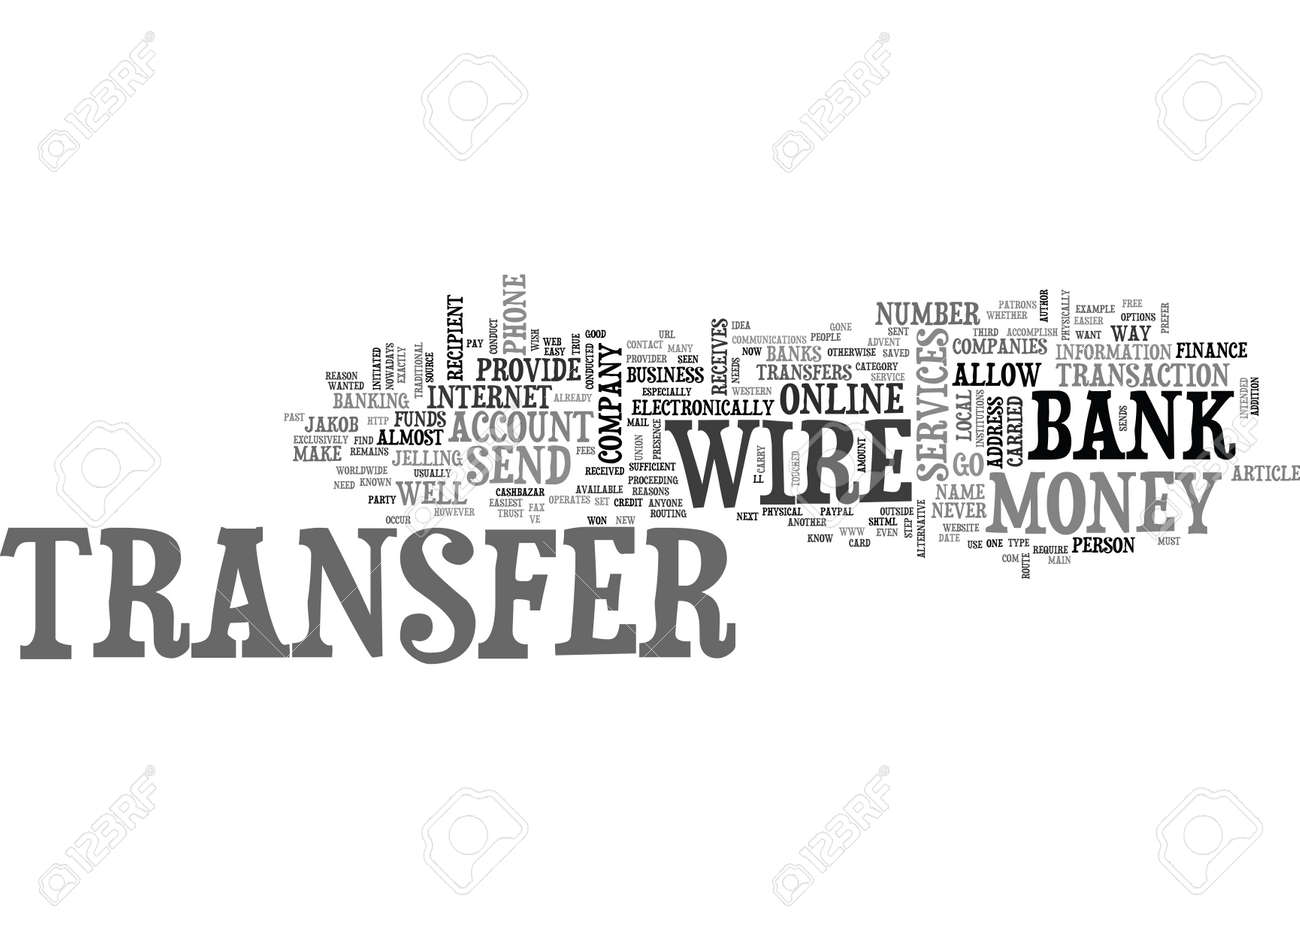 WIRE TRANSFERS THE EASIEST WAY TO SEND MONEY TEXT WORD CLOUD ...